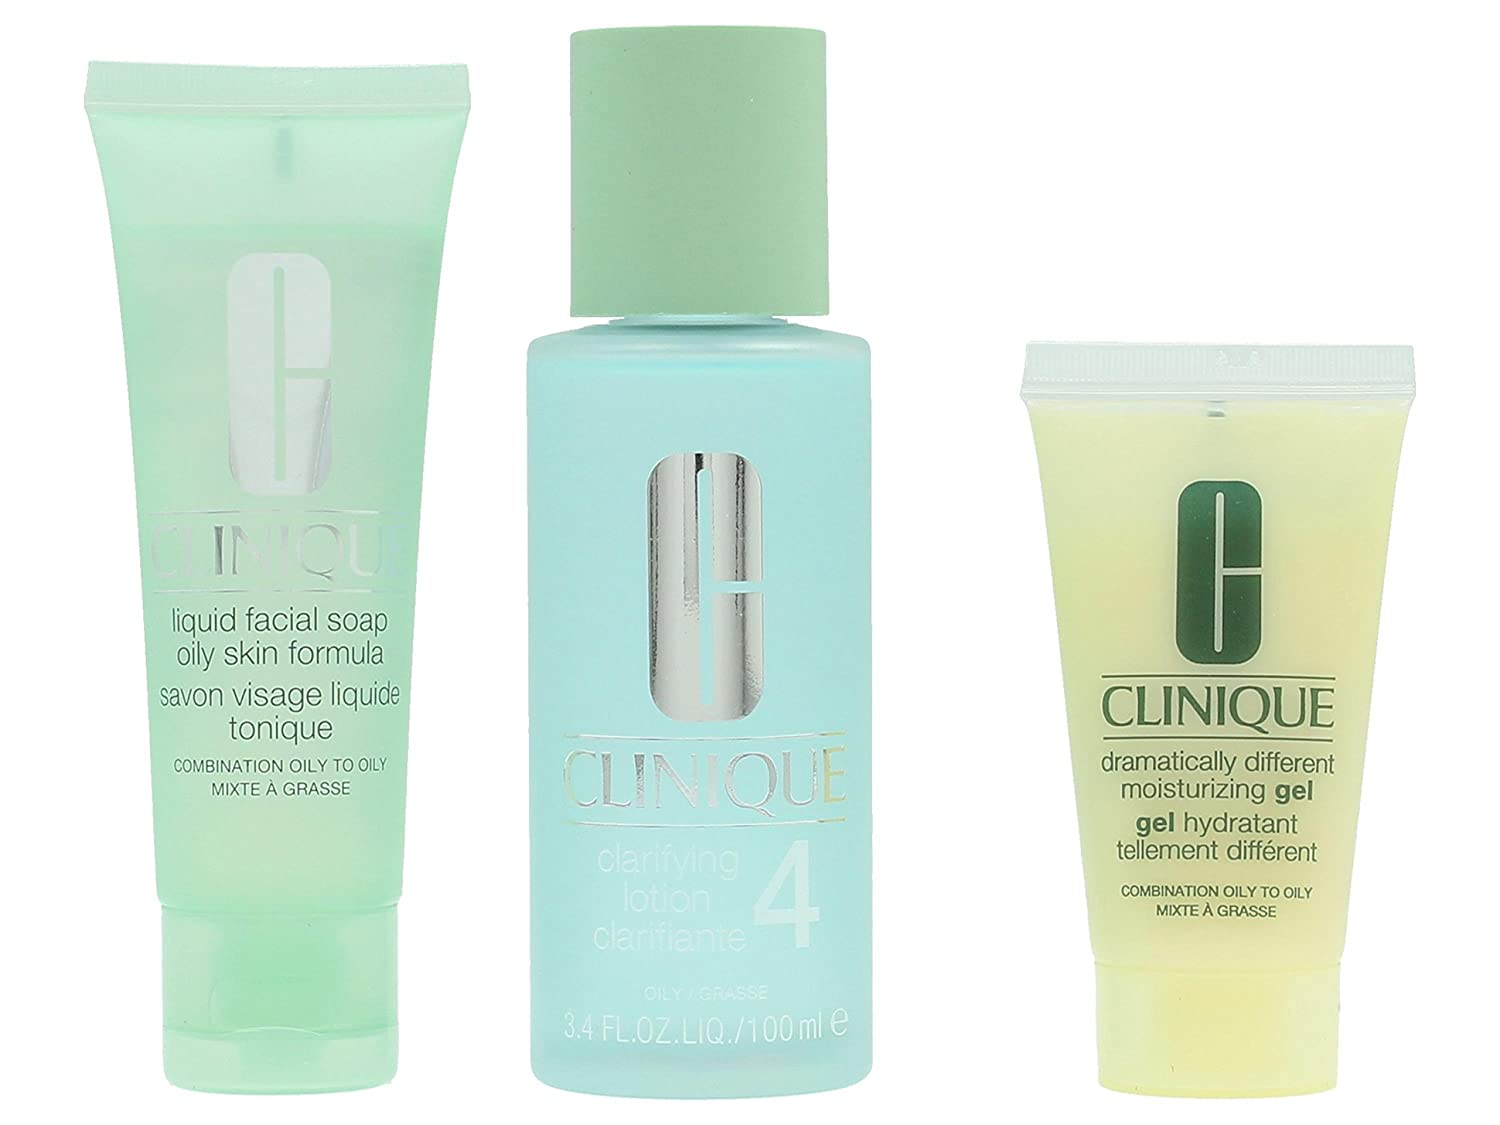 Clinique Unisex Great Skin Set Liquid Facial Soap 50 ml/Clarifying Lotion4 100 ml, Dramatically Different Moisturizing Gel 30 ml 0020714460051 CLI00057